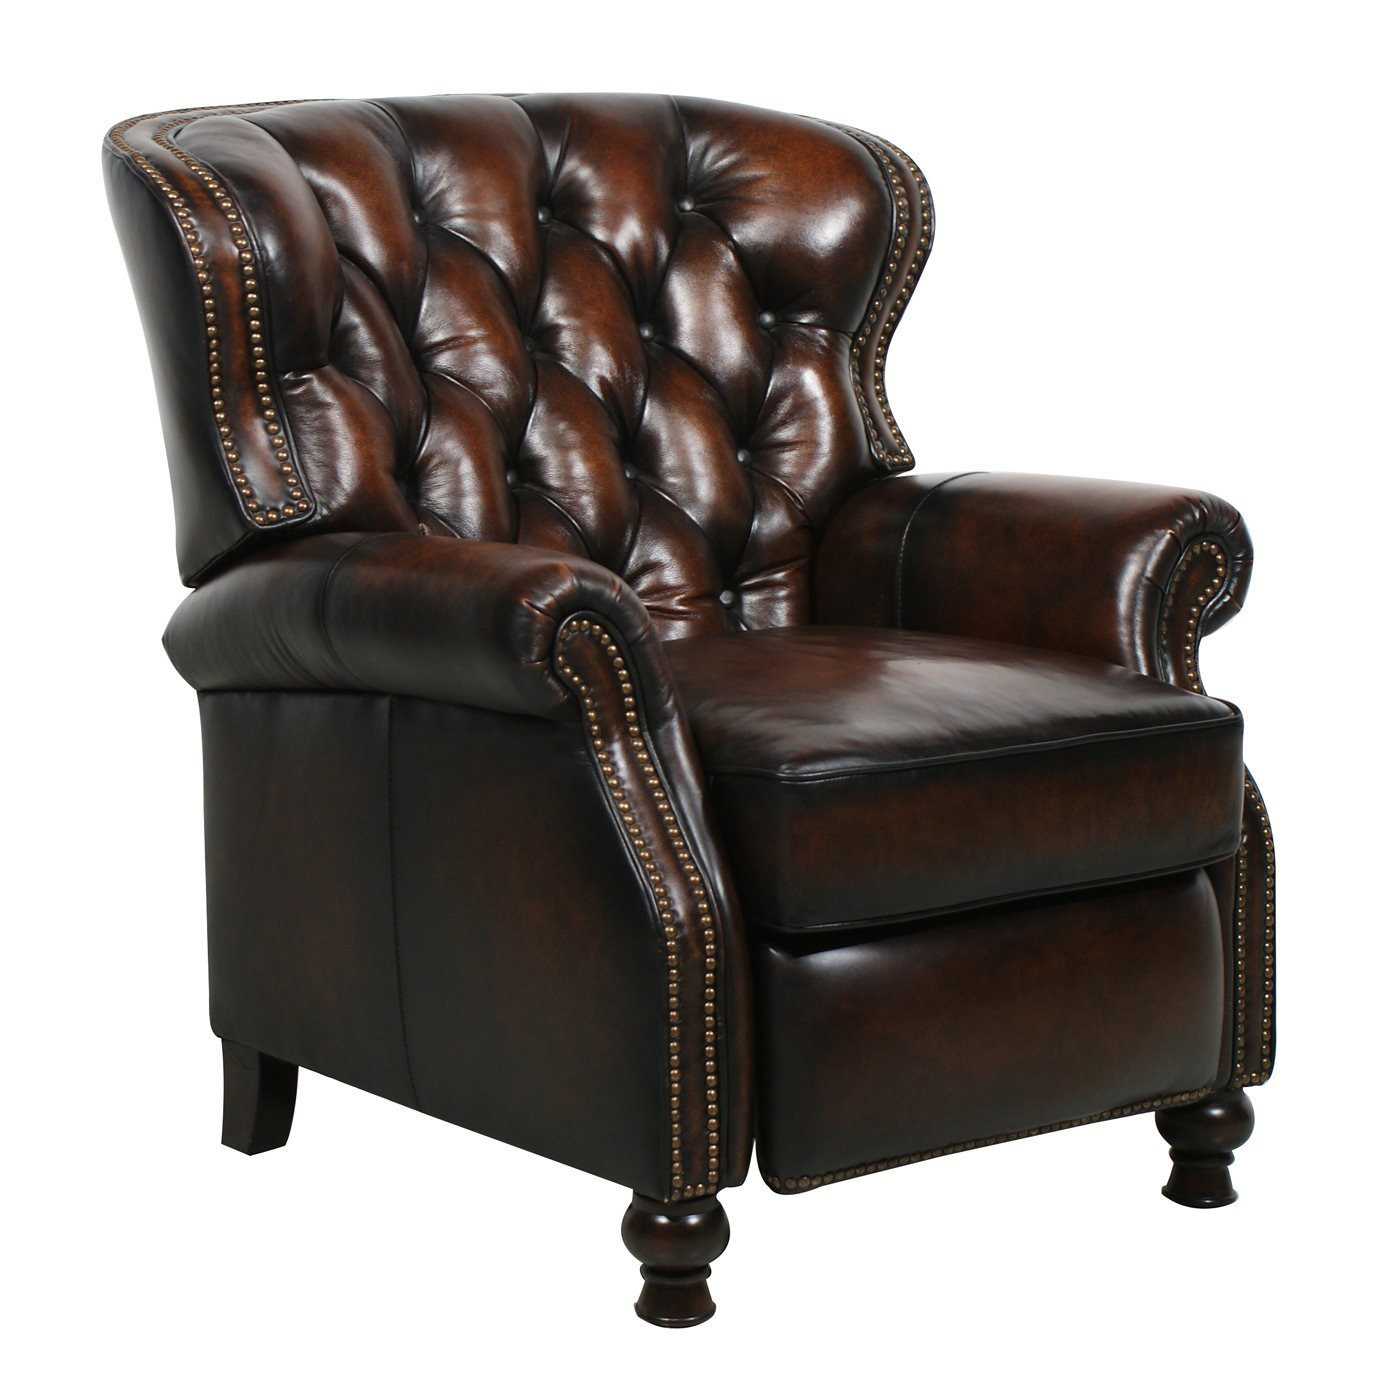 Good Barcalounger Presidential II Recliner Leather Chair